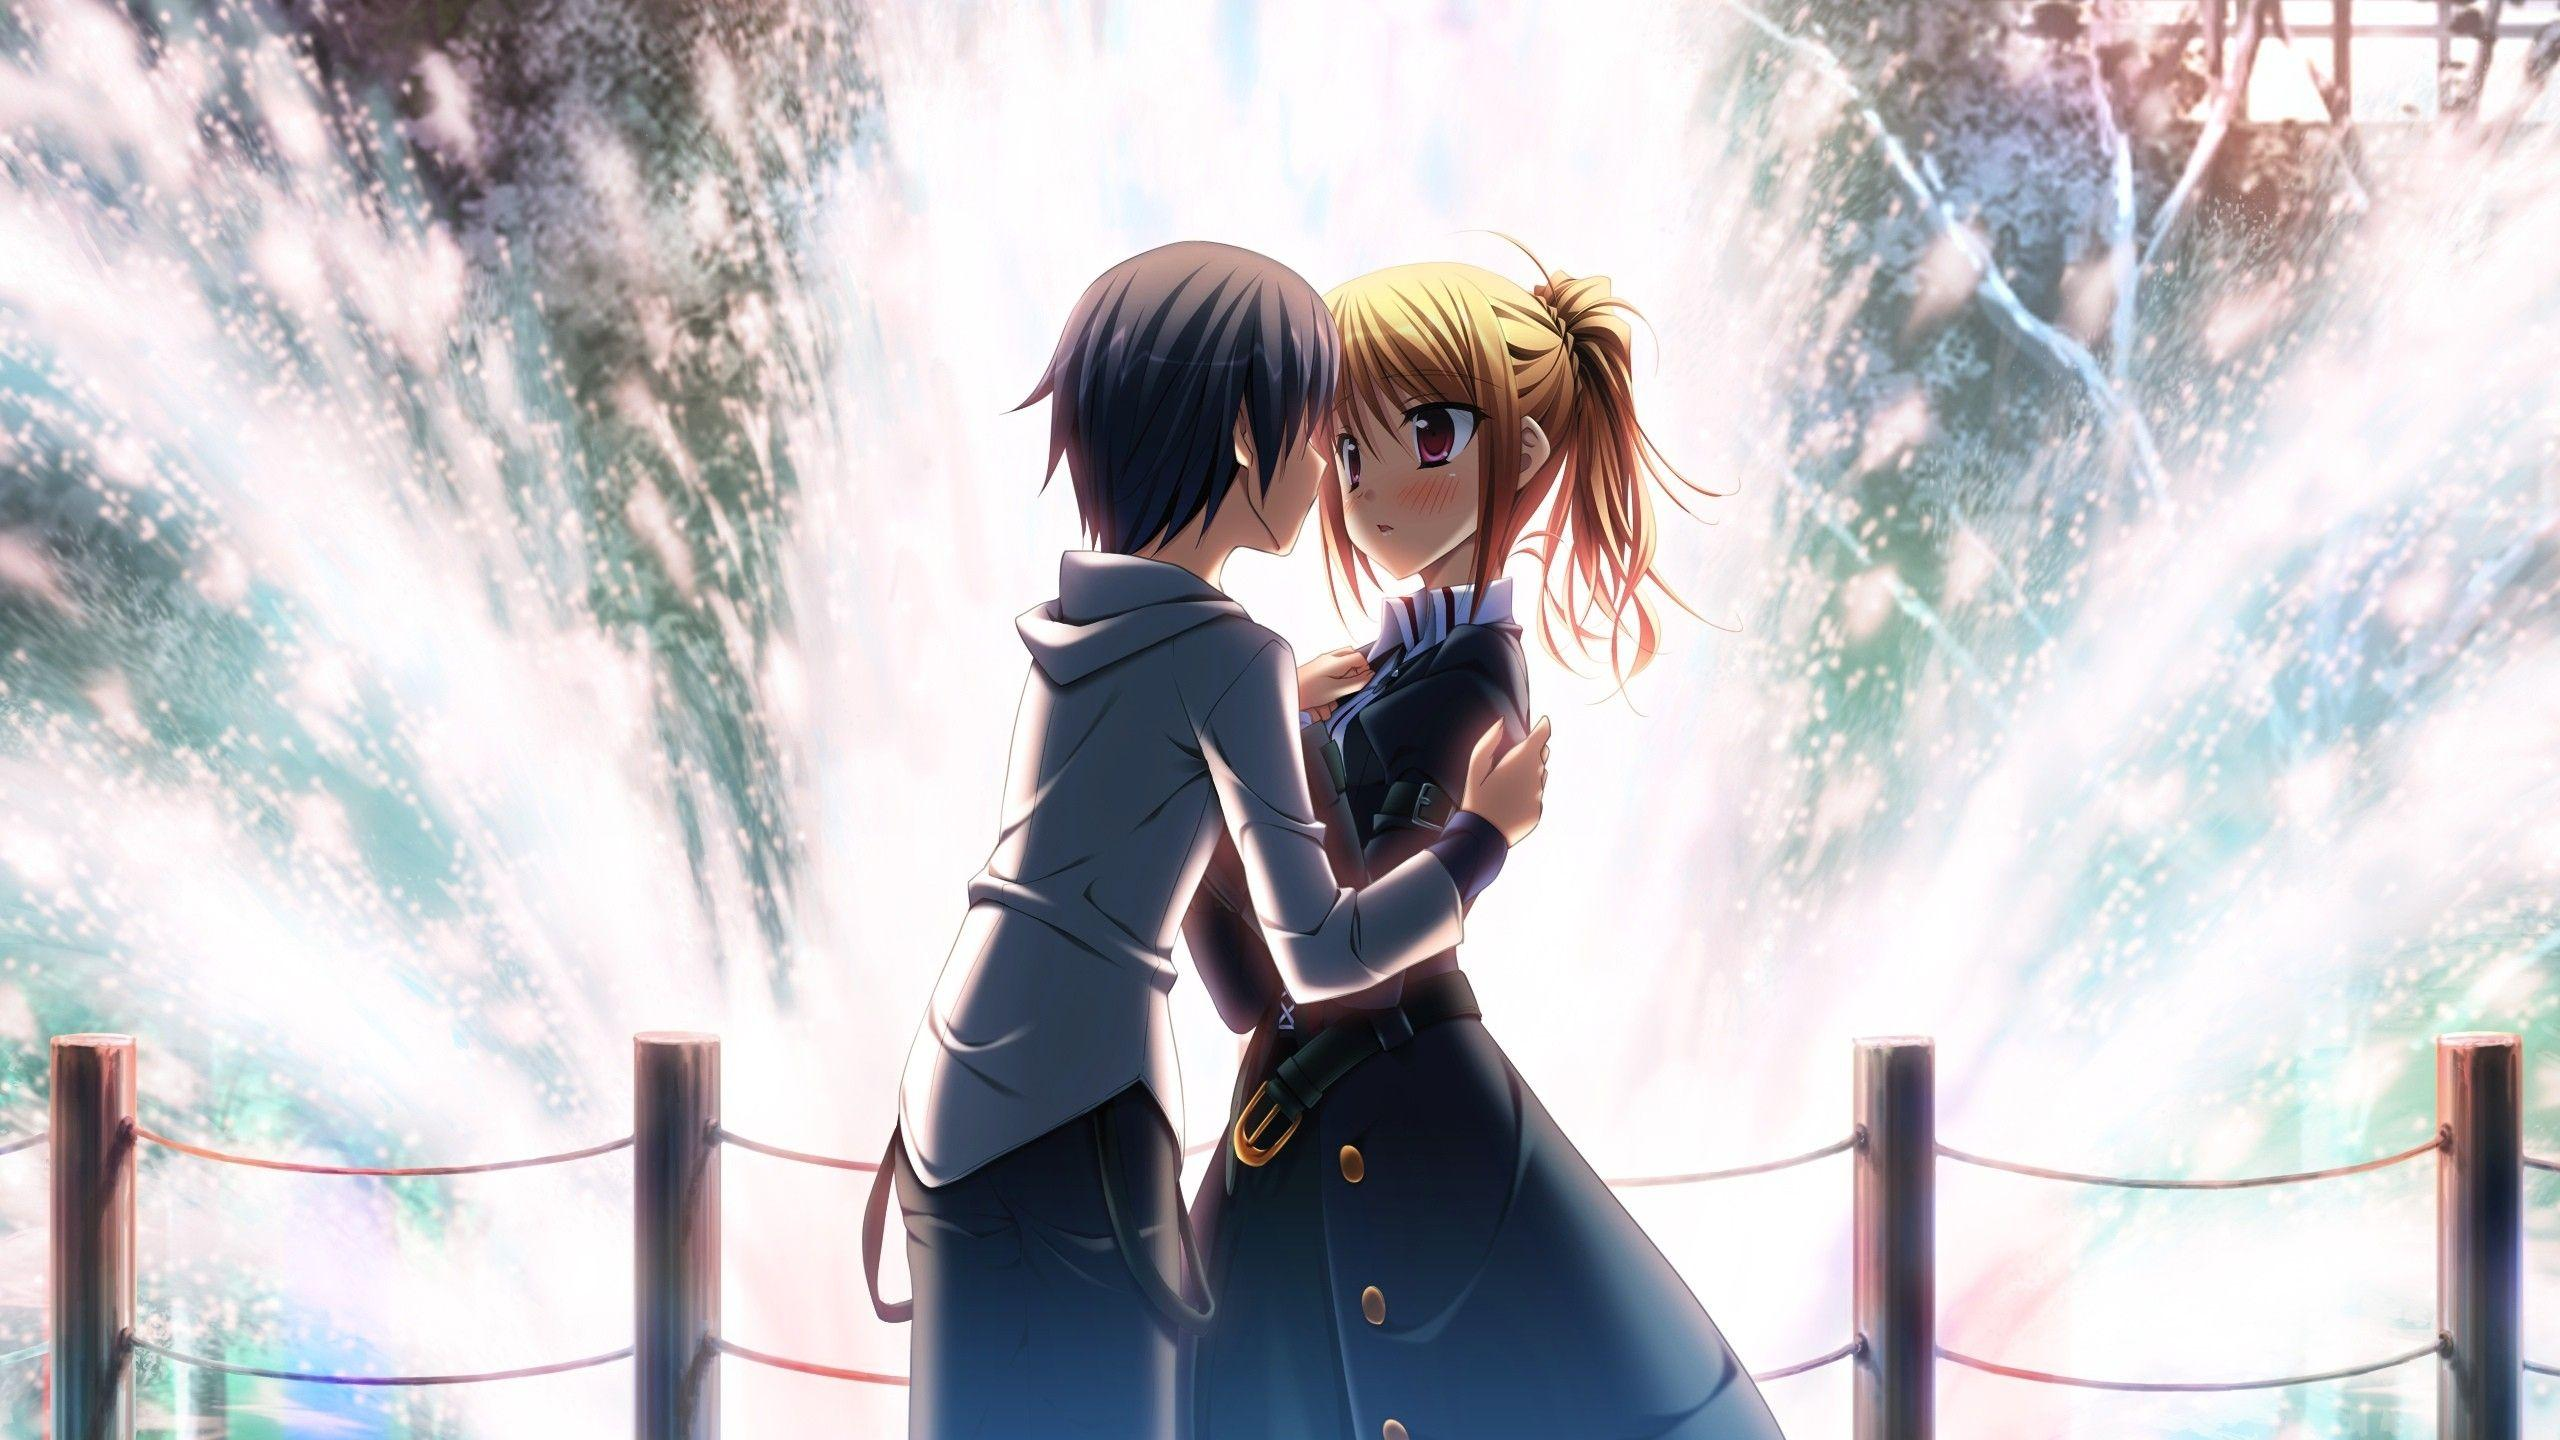 Anime Love Wallpapers HD - Wallpaper Cave